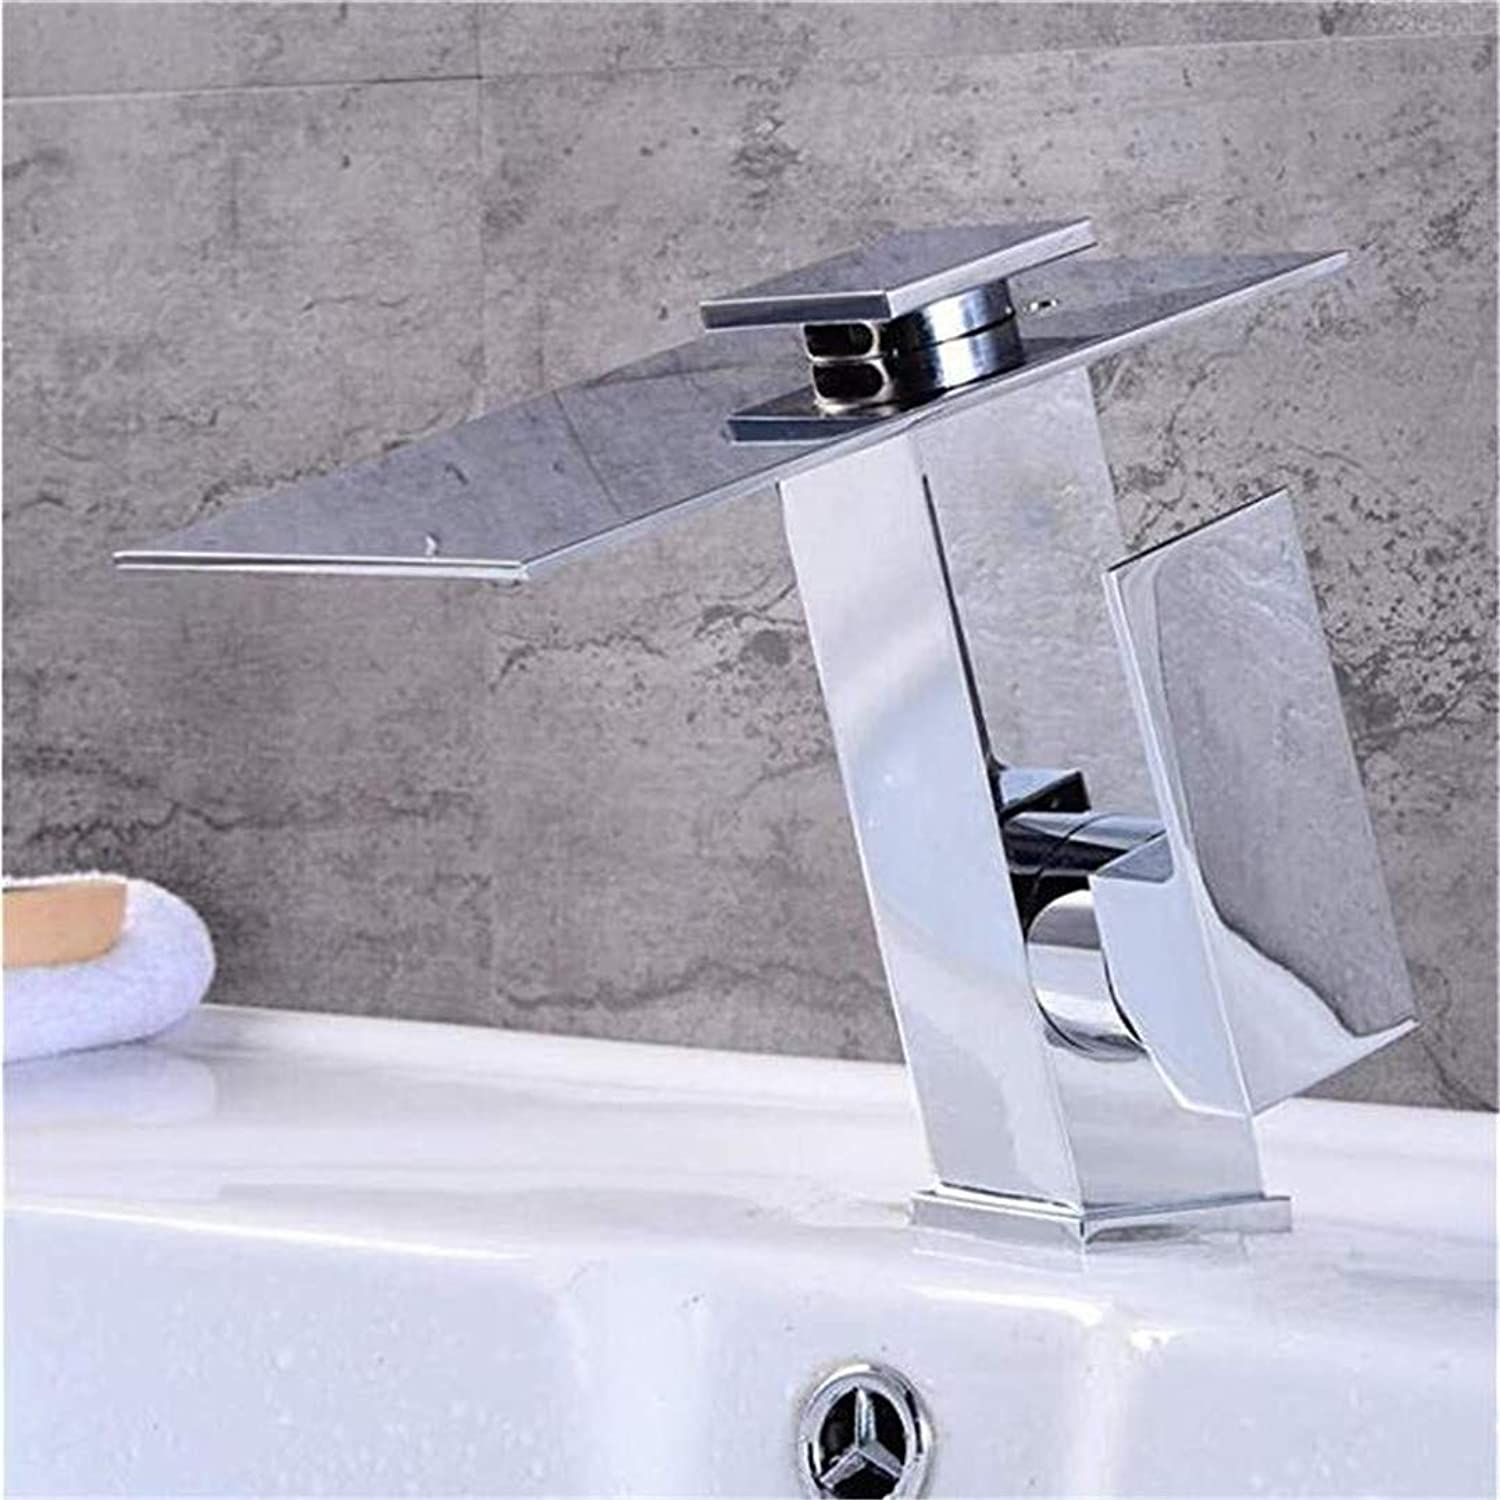 Oudan Taps Kitchen Faucetbathroom Sink Tapwaterfall Faucet European Copper Retro Hot and Cold Bathroom Sink Faucet Sink Mixer Tap Brushed Chrome Plating Faucet (color   -, Size   -)